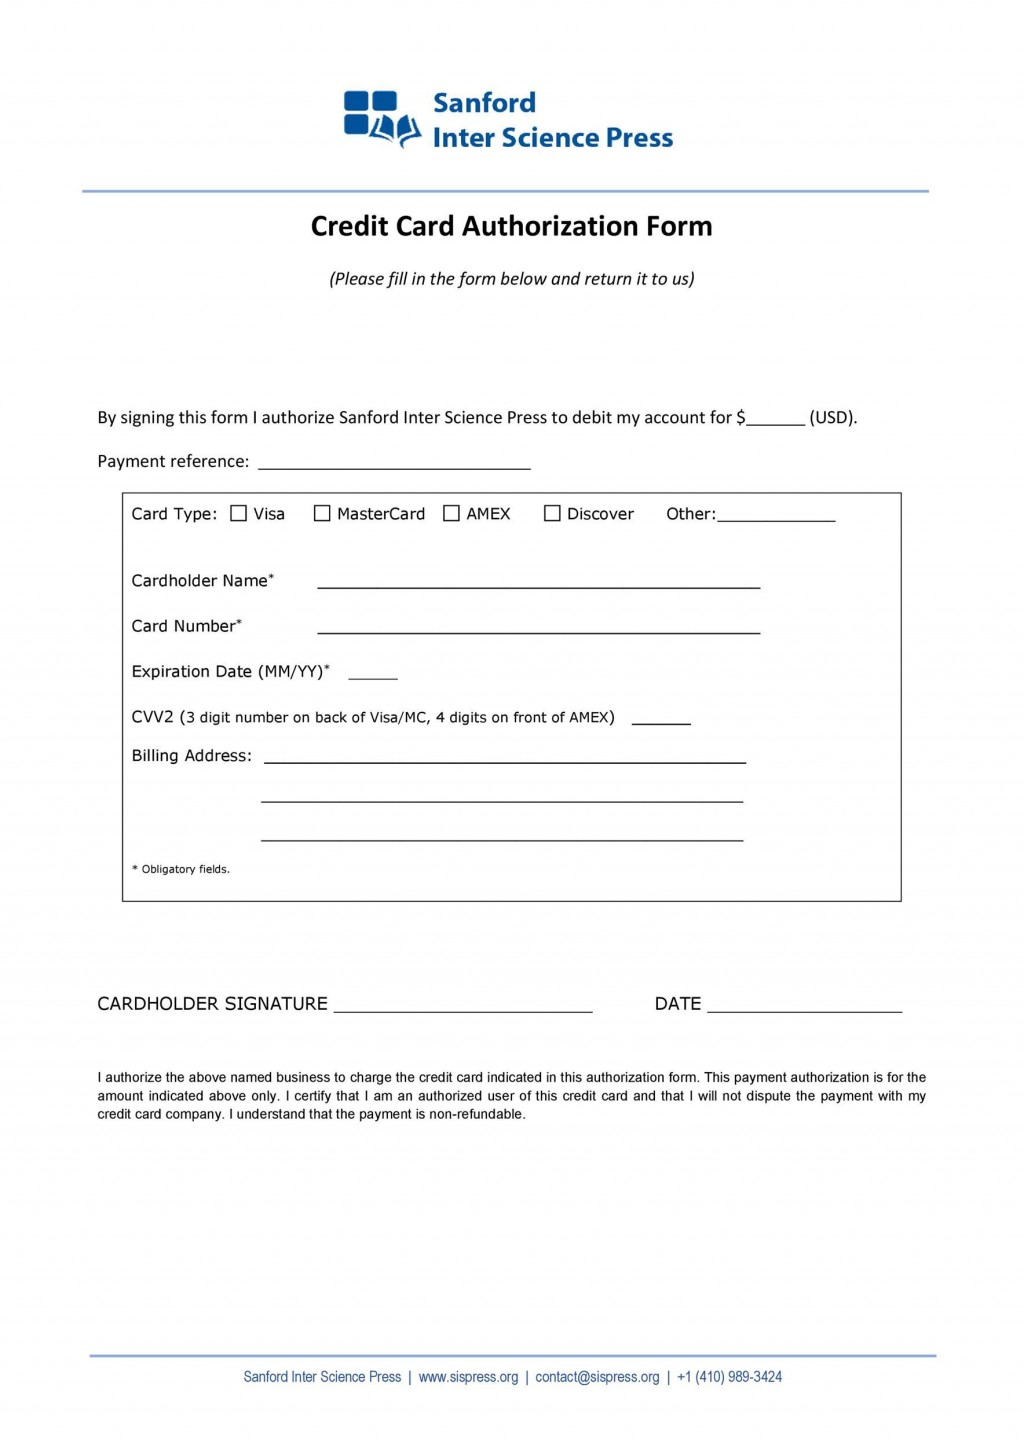 007 Formidable Credit Card Form Template Html Idea  Example Payment CsLarge